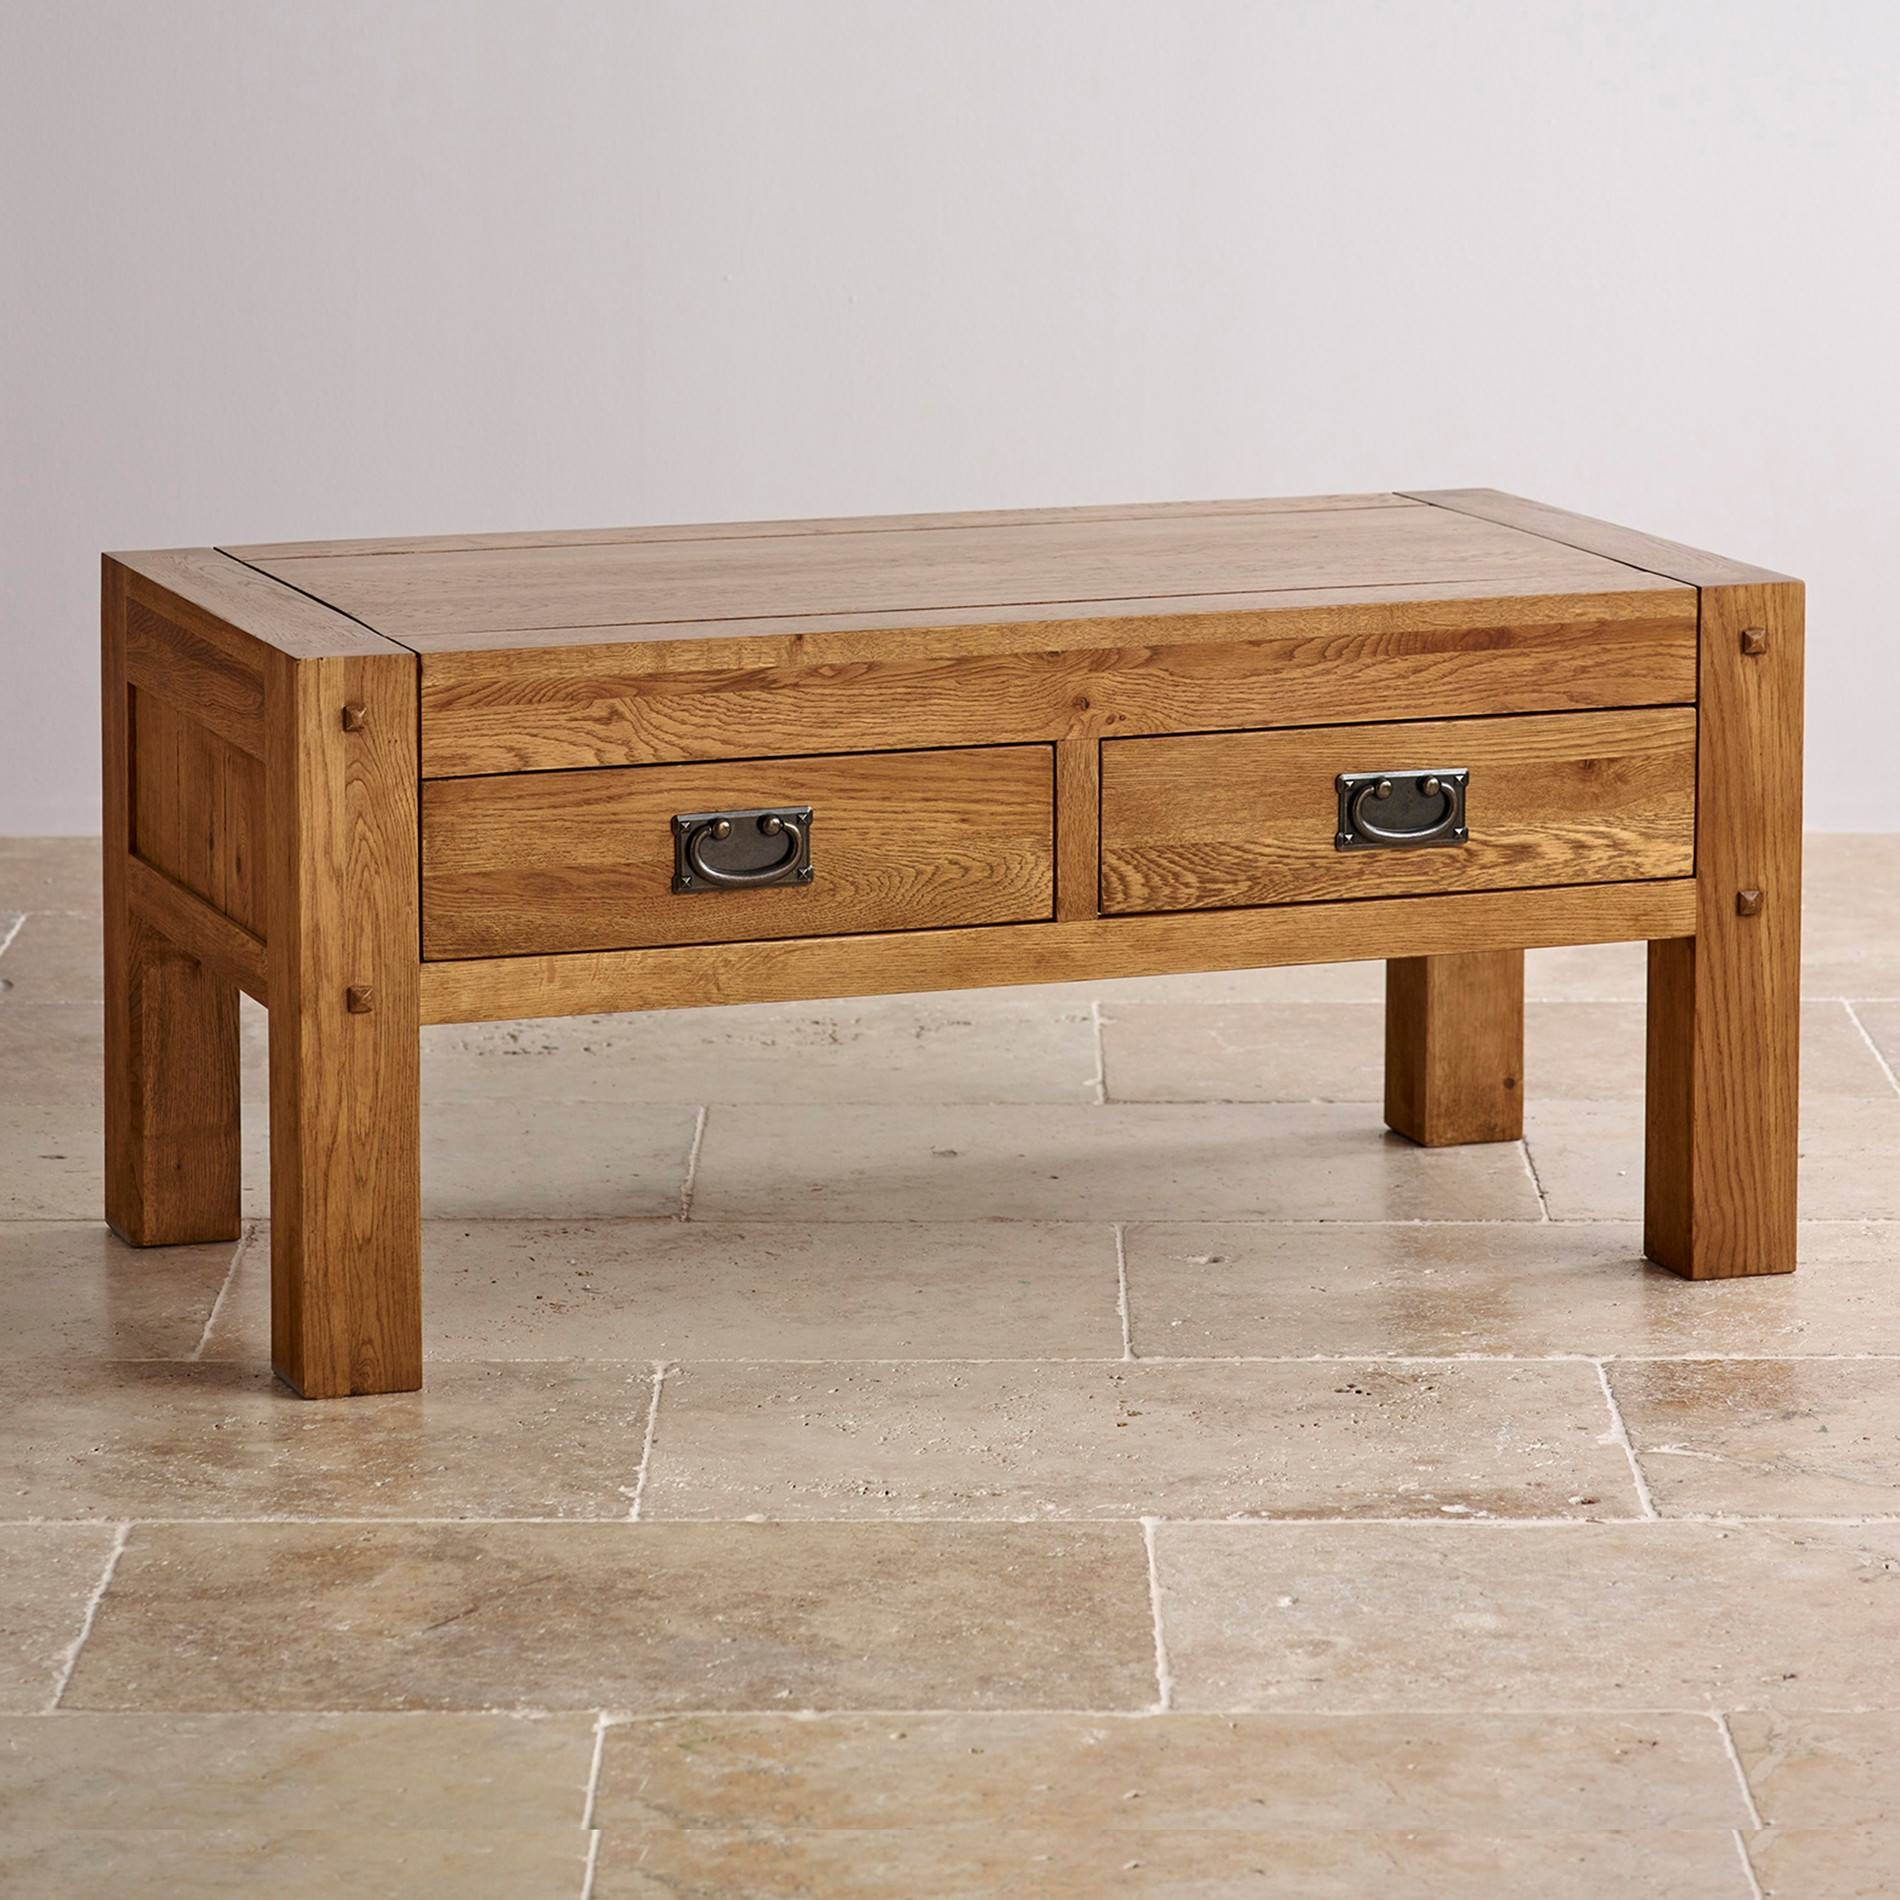 Quercus Coffee Table | Rustic Solid Oak | Oak Furniture Land in Solid Oak Coffee Table With Storage (Image 12 of 15)